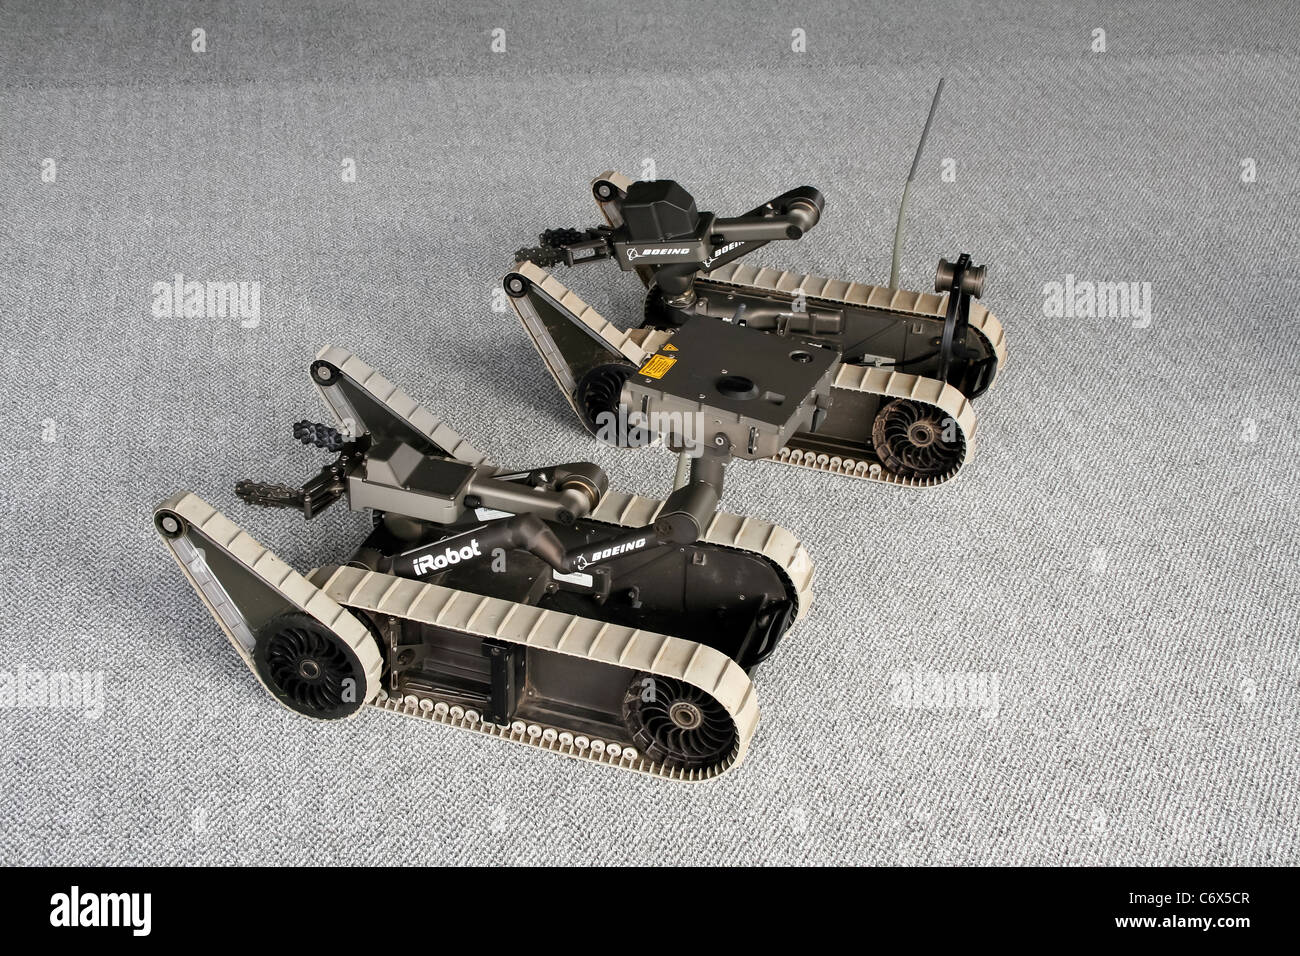 iRobot Boeing SUGV Small Unmanned Ground Vehicle at the Farnborough International Airshow - Stock Image